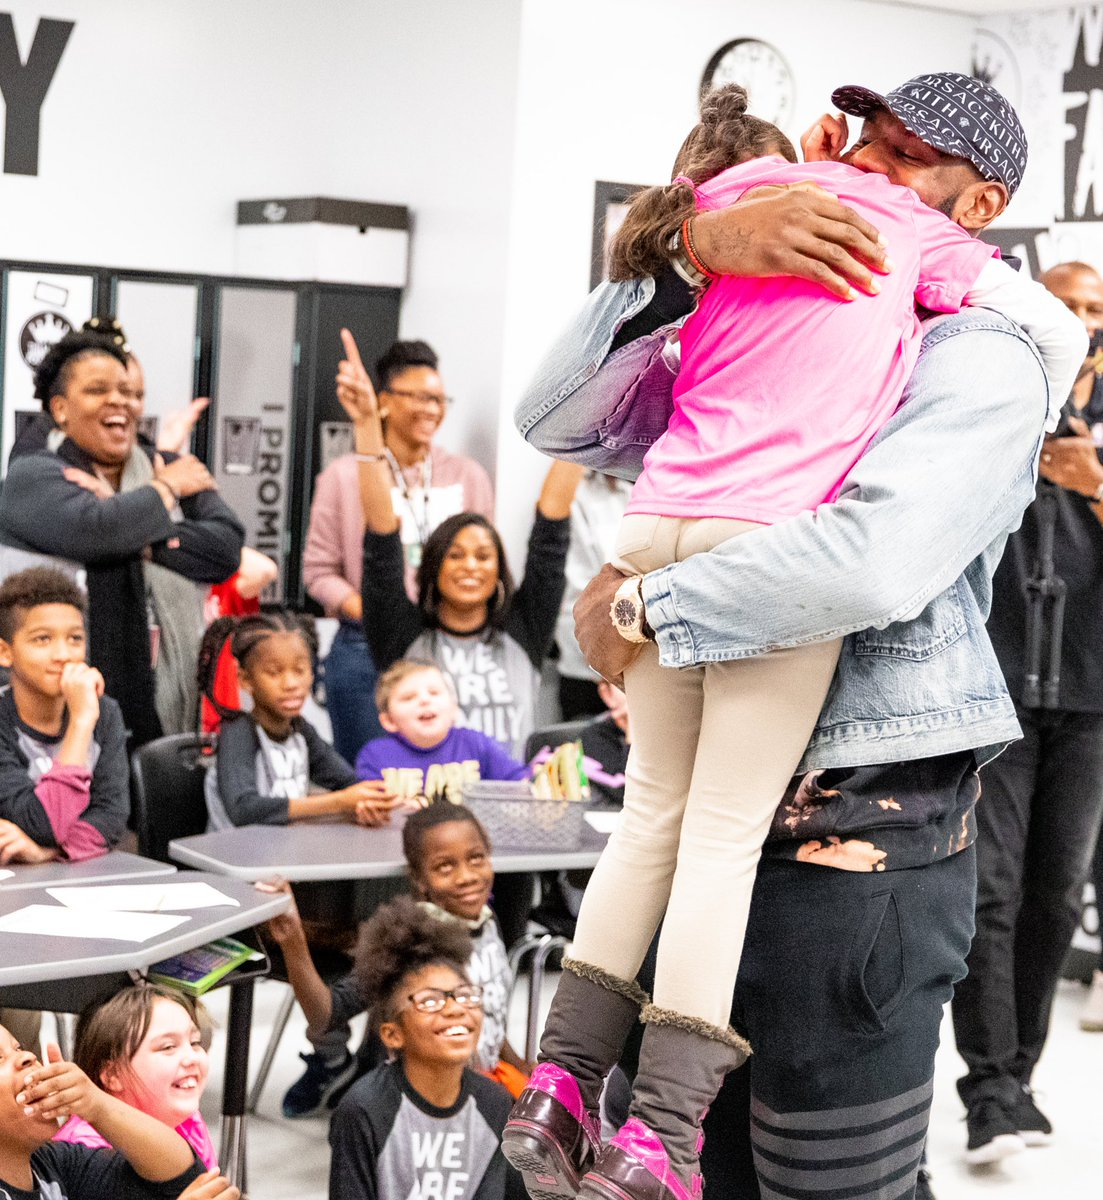 All love & smiles with our big kid from Akron back in school 🖤 @KingJames #WeAreFamily #IPROMISE